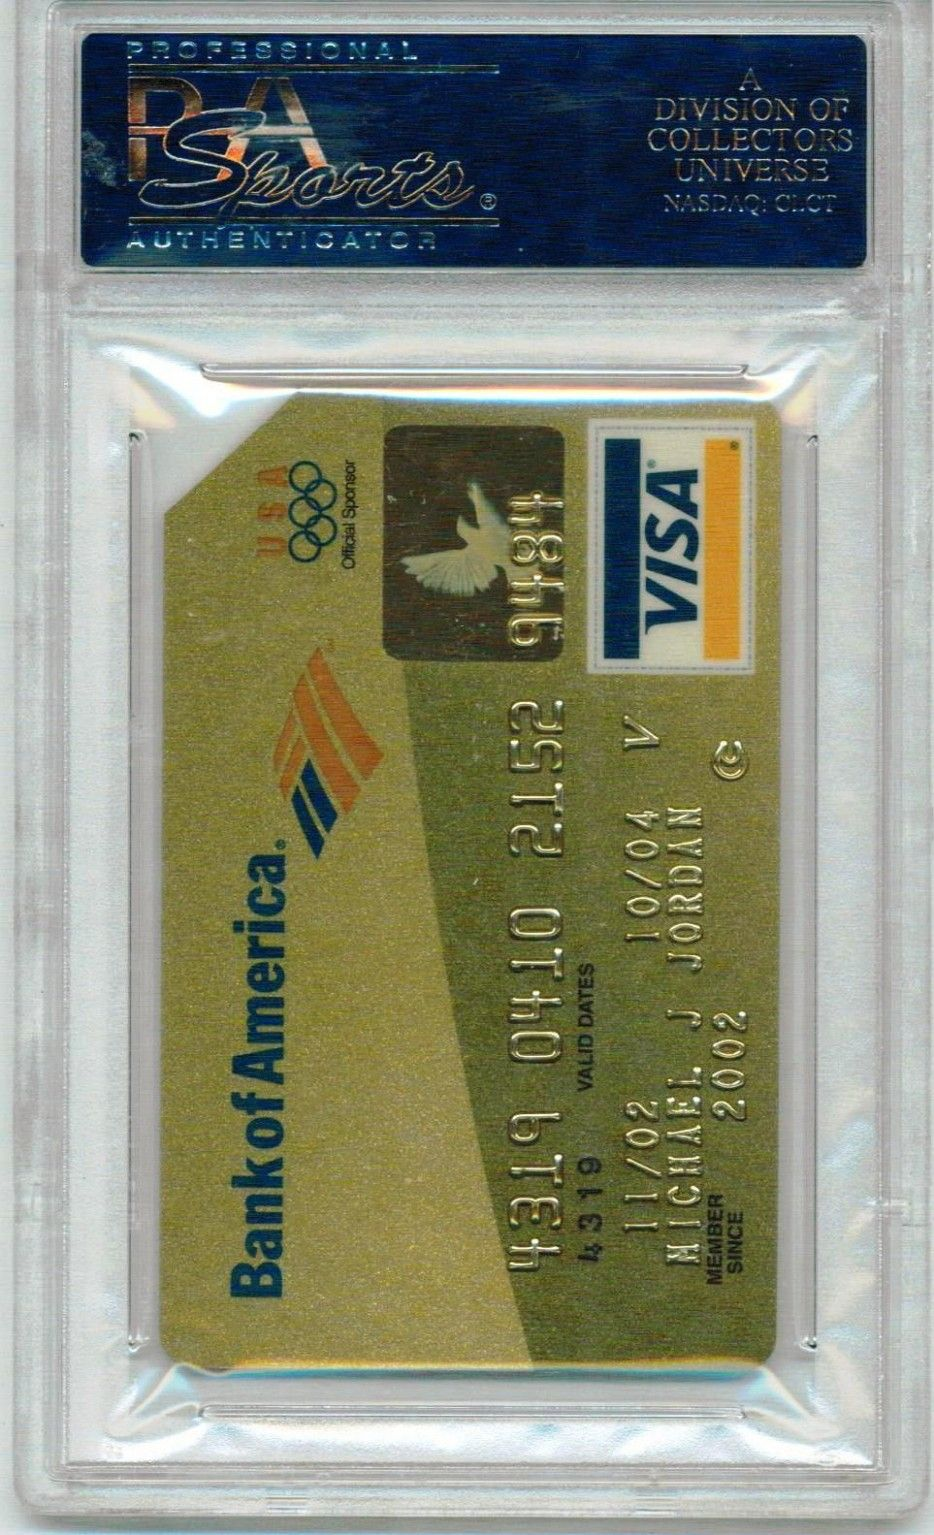 Bank of america gold card 5 new thoughts about bank of